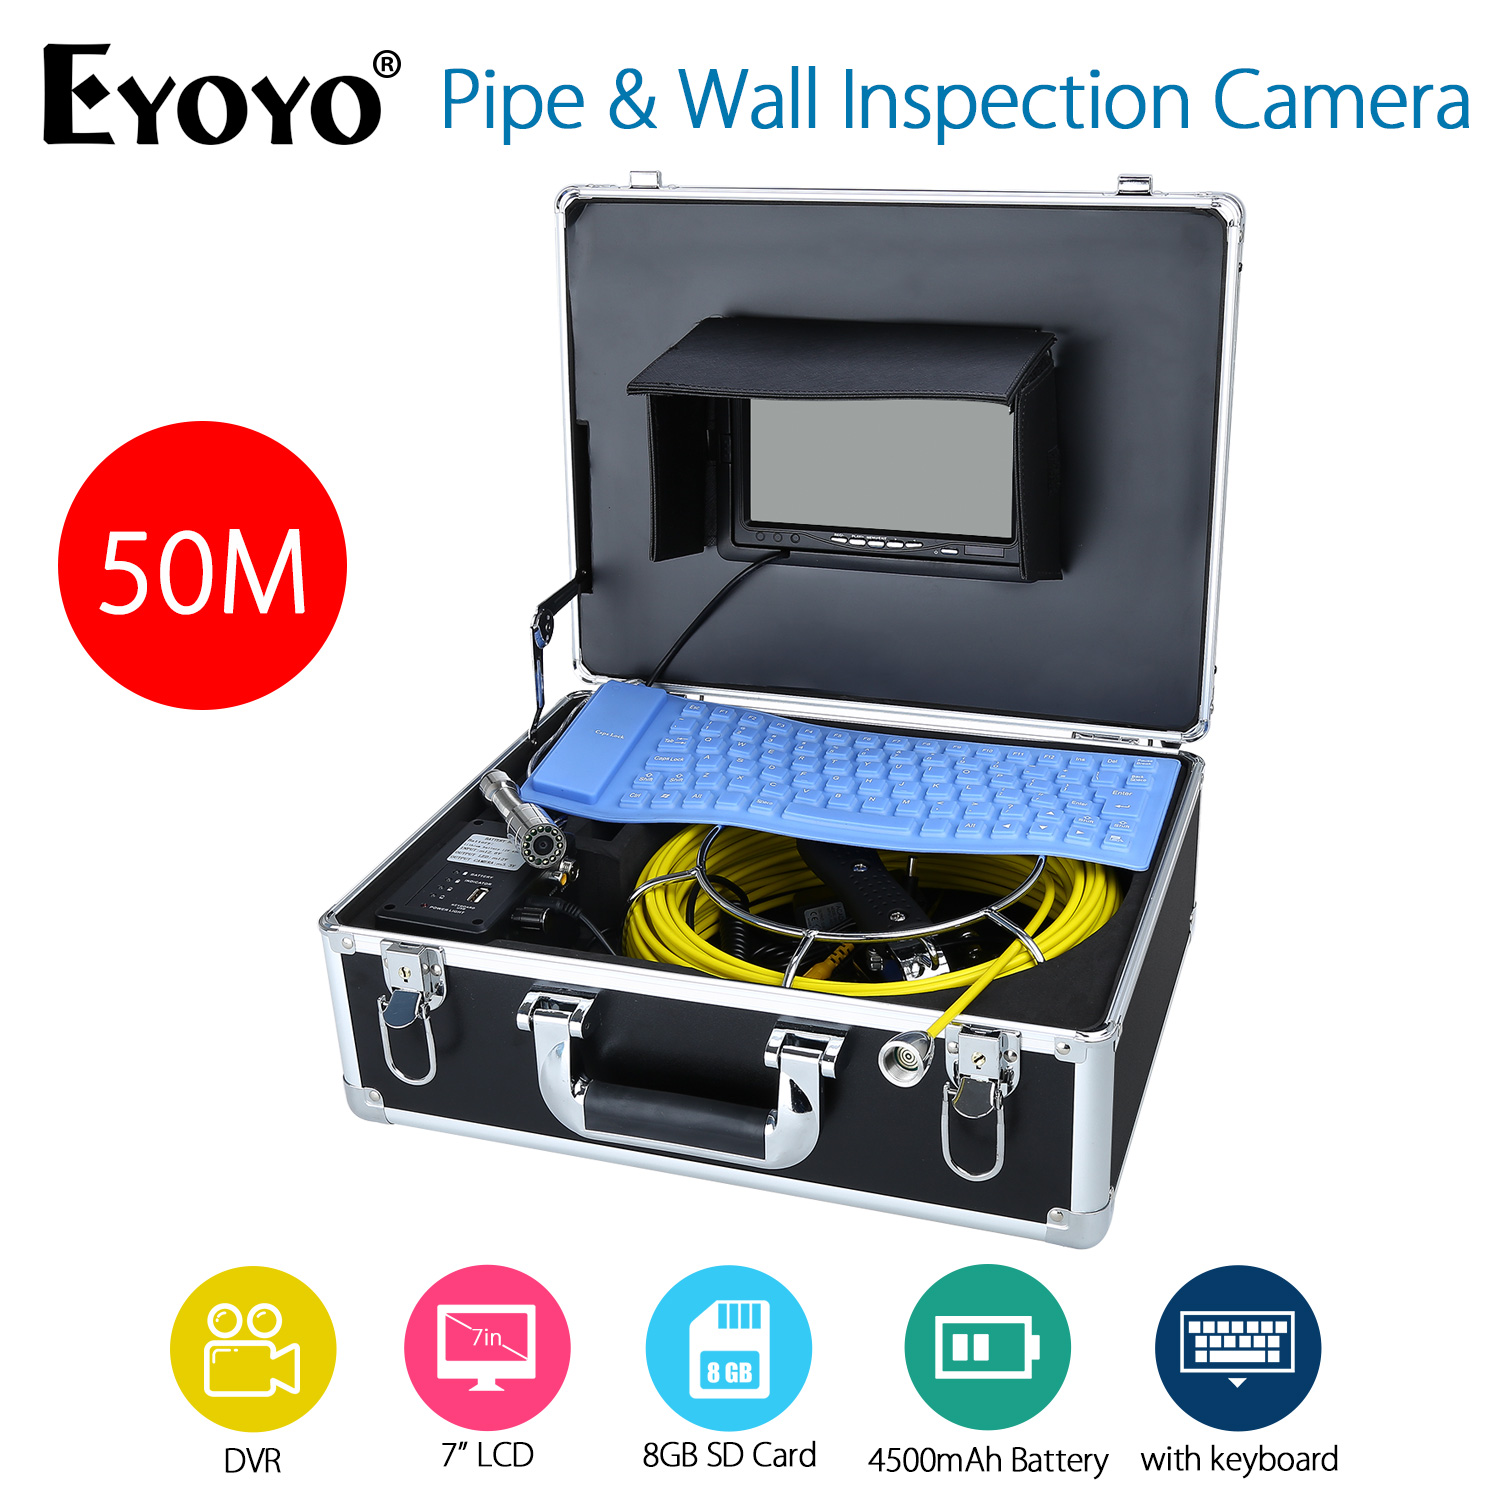 Eyoyo 7 Pipe Sewer Inspection Camera 50m DVR 8GB Drain Industrial Endoscope Video Inspection System Snake Camera w/ Keyboard dhl free wp90 50m industrial pipeline endoscope 6 5 17 23mm snake video camera 9 lcd sewer drain pipe inspection camera system